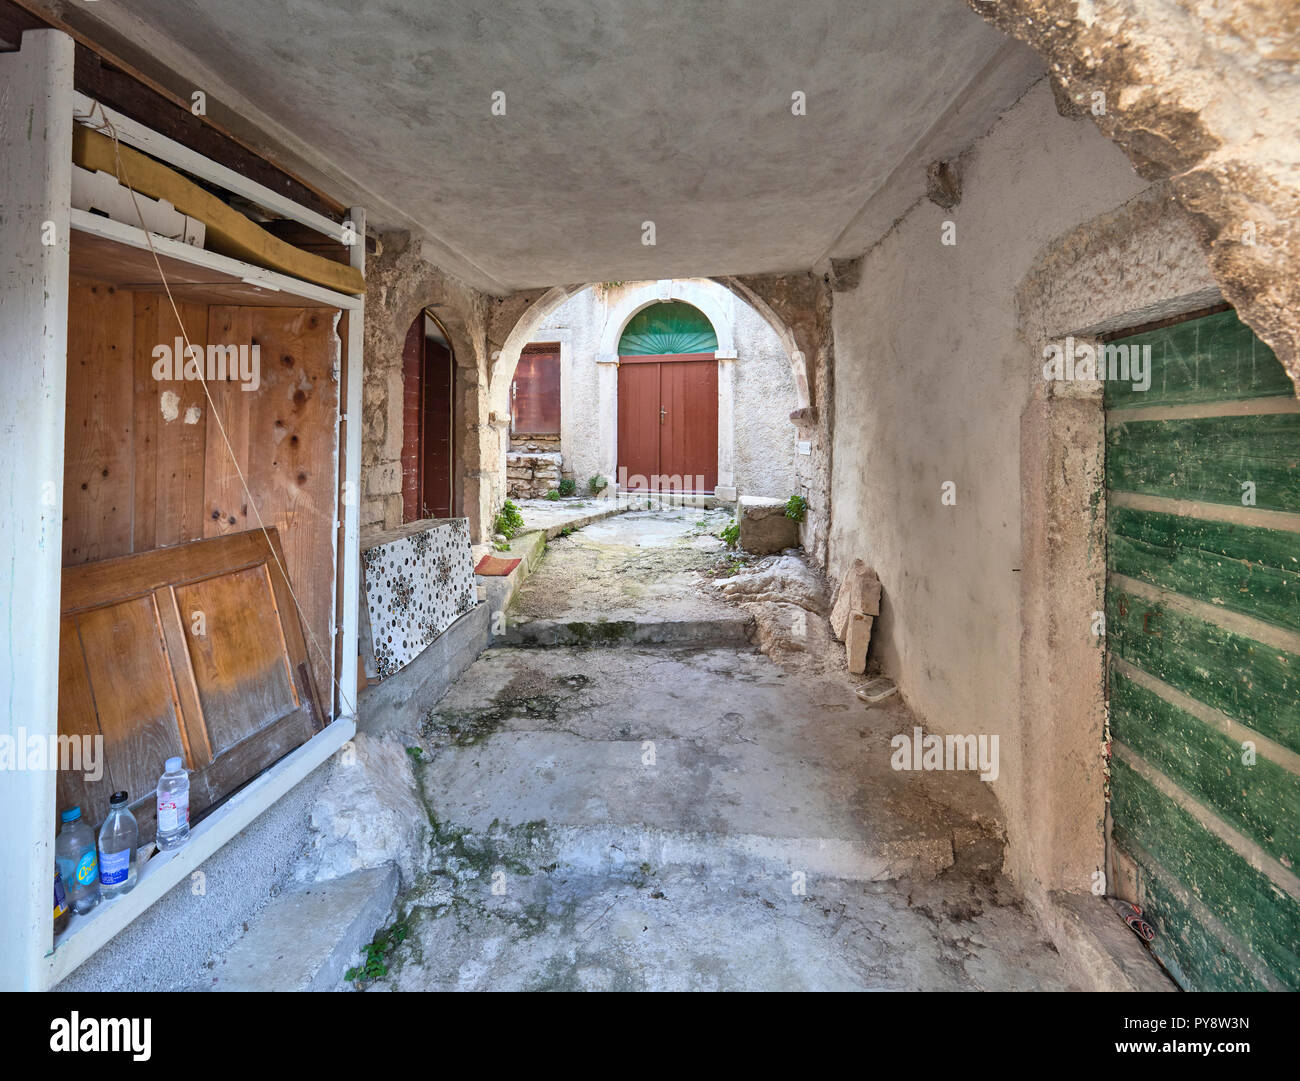 Inside the old roman-style village of Plomin in Istria, Croatia - Stock Image